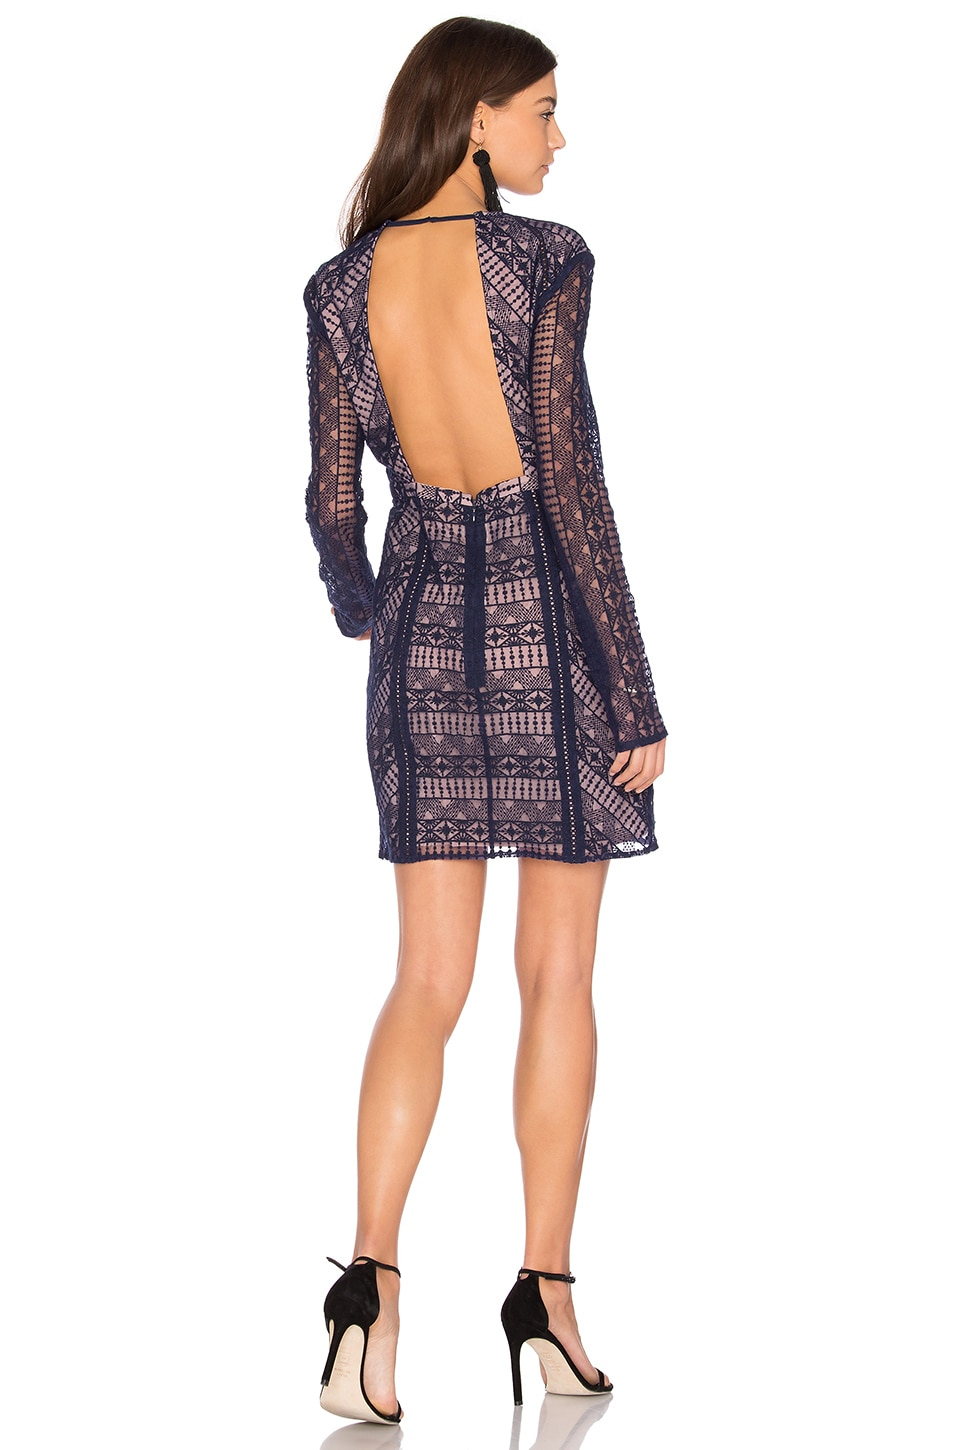 Eden Mini Dress by THE JETSET DIARIES